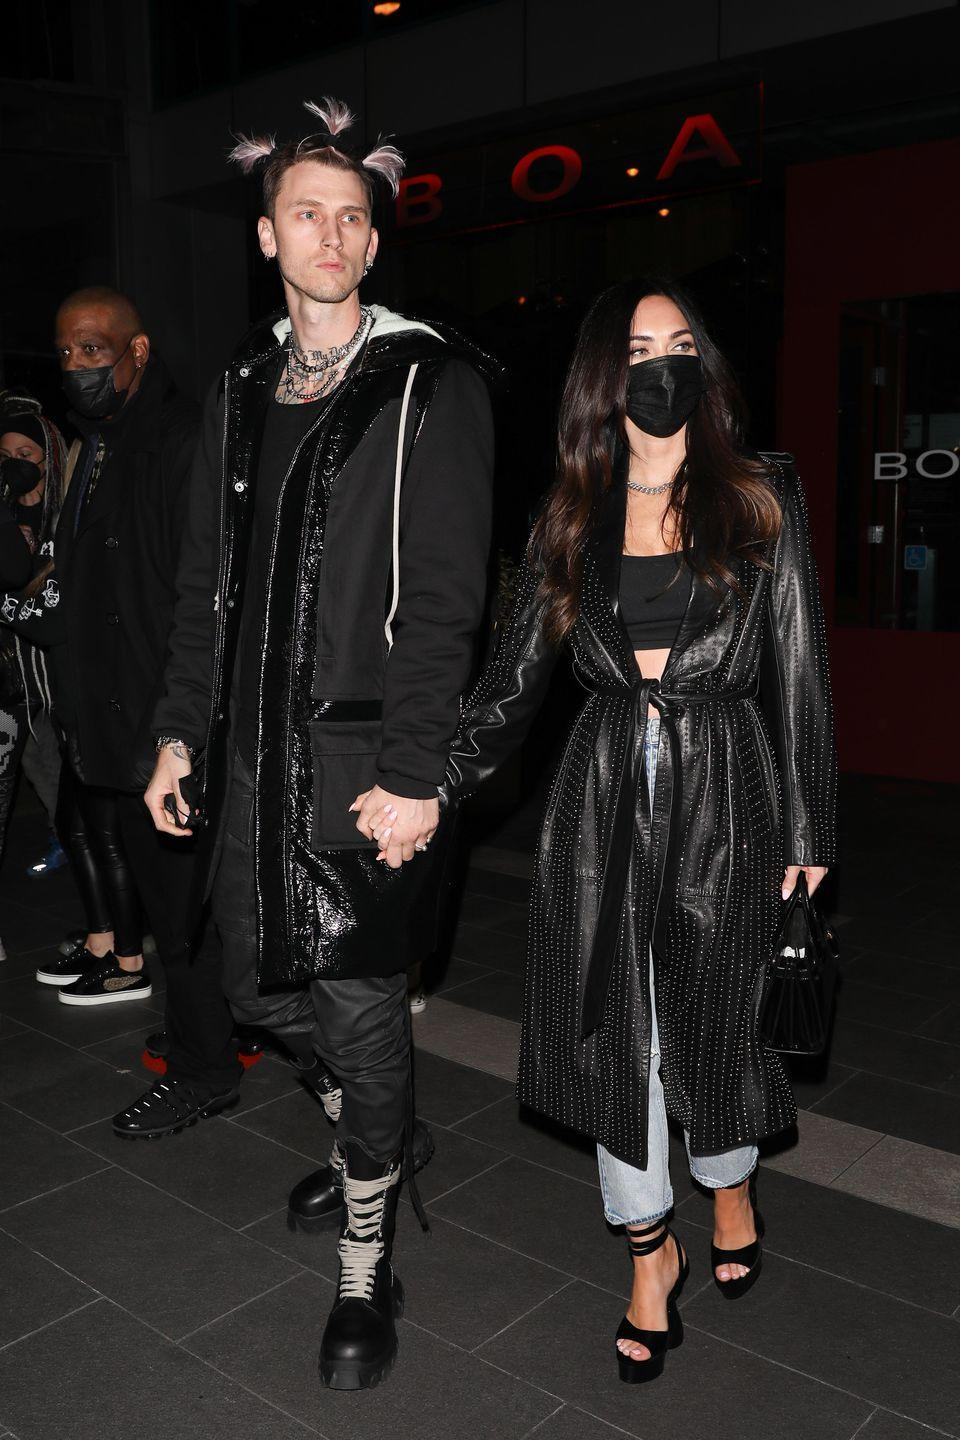 <p>Fox tied a long black leather coat over her black bralette, jeans and black heels, teamed with a black face mask while out with her partner. </p>